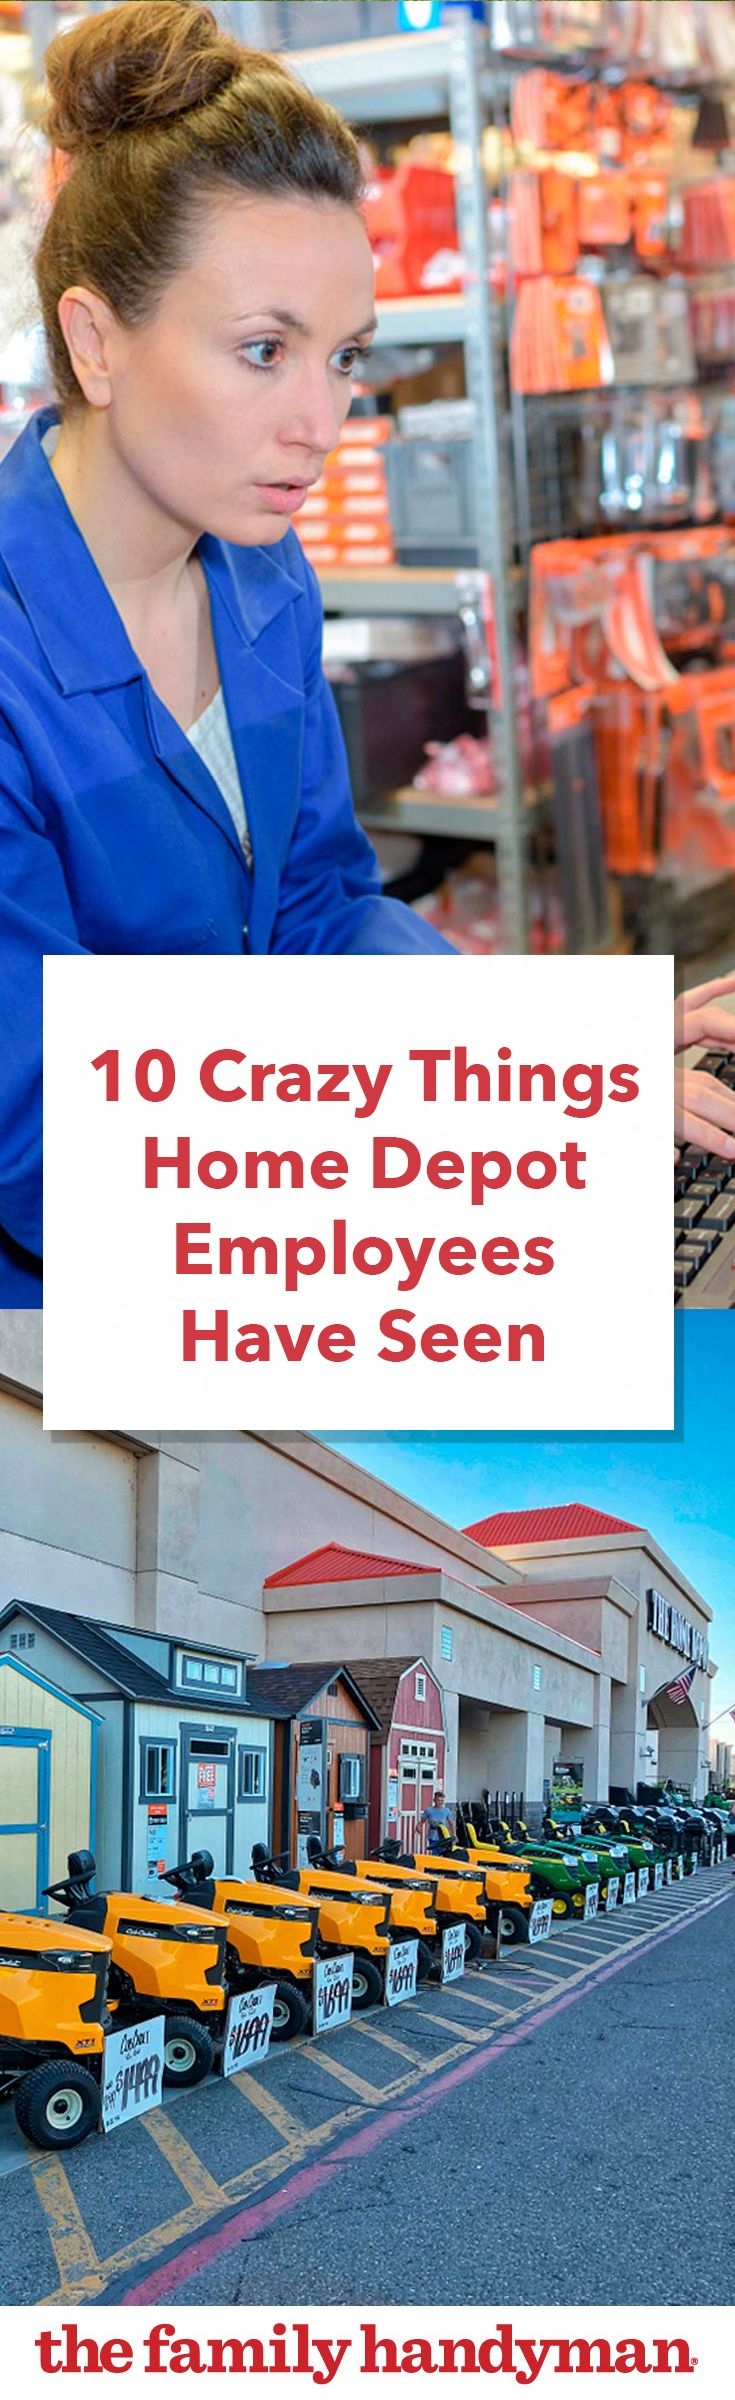 13 Crazy Things Home Depot Employees Have Seen Home